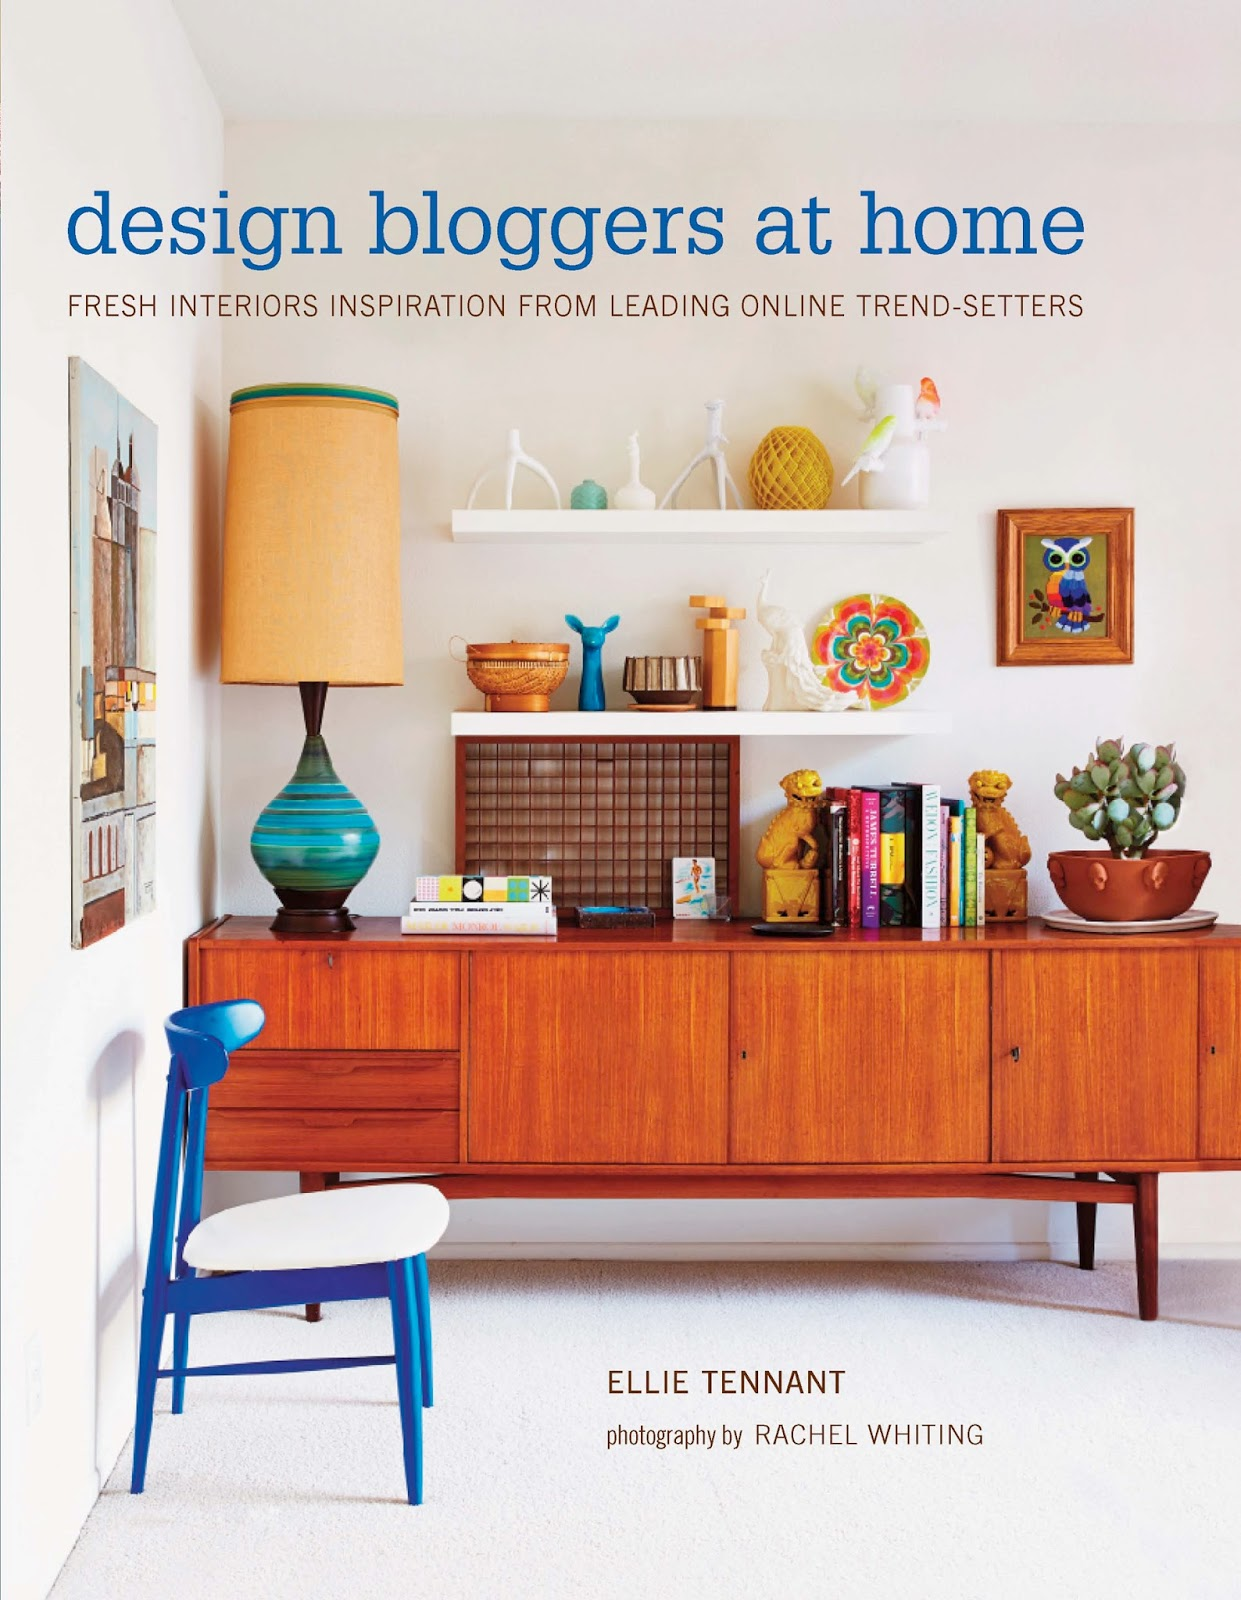 Vosgesparis my home in 39 design bloggers at home 39 a sneak peek - Books on home design ...